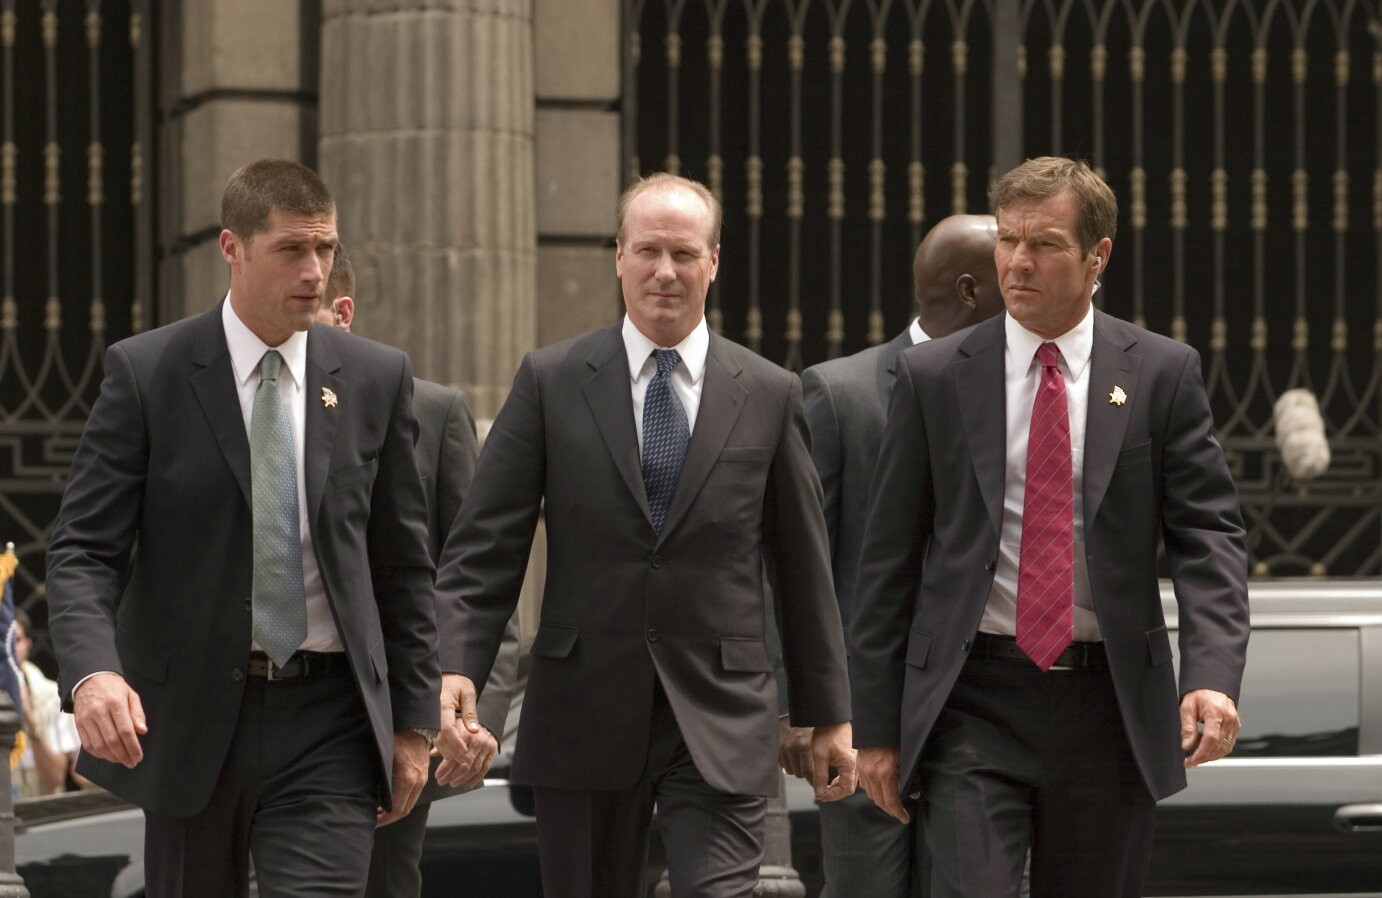 Dennis Quaid,Matthew Fox,William Hurt